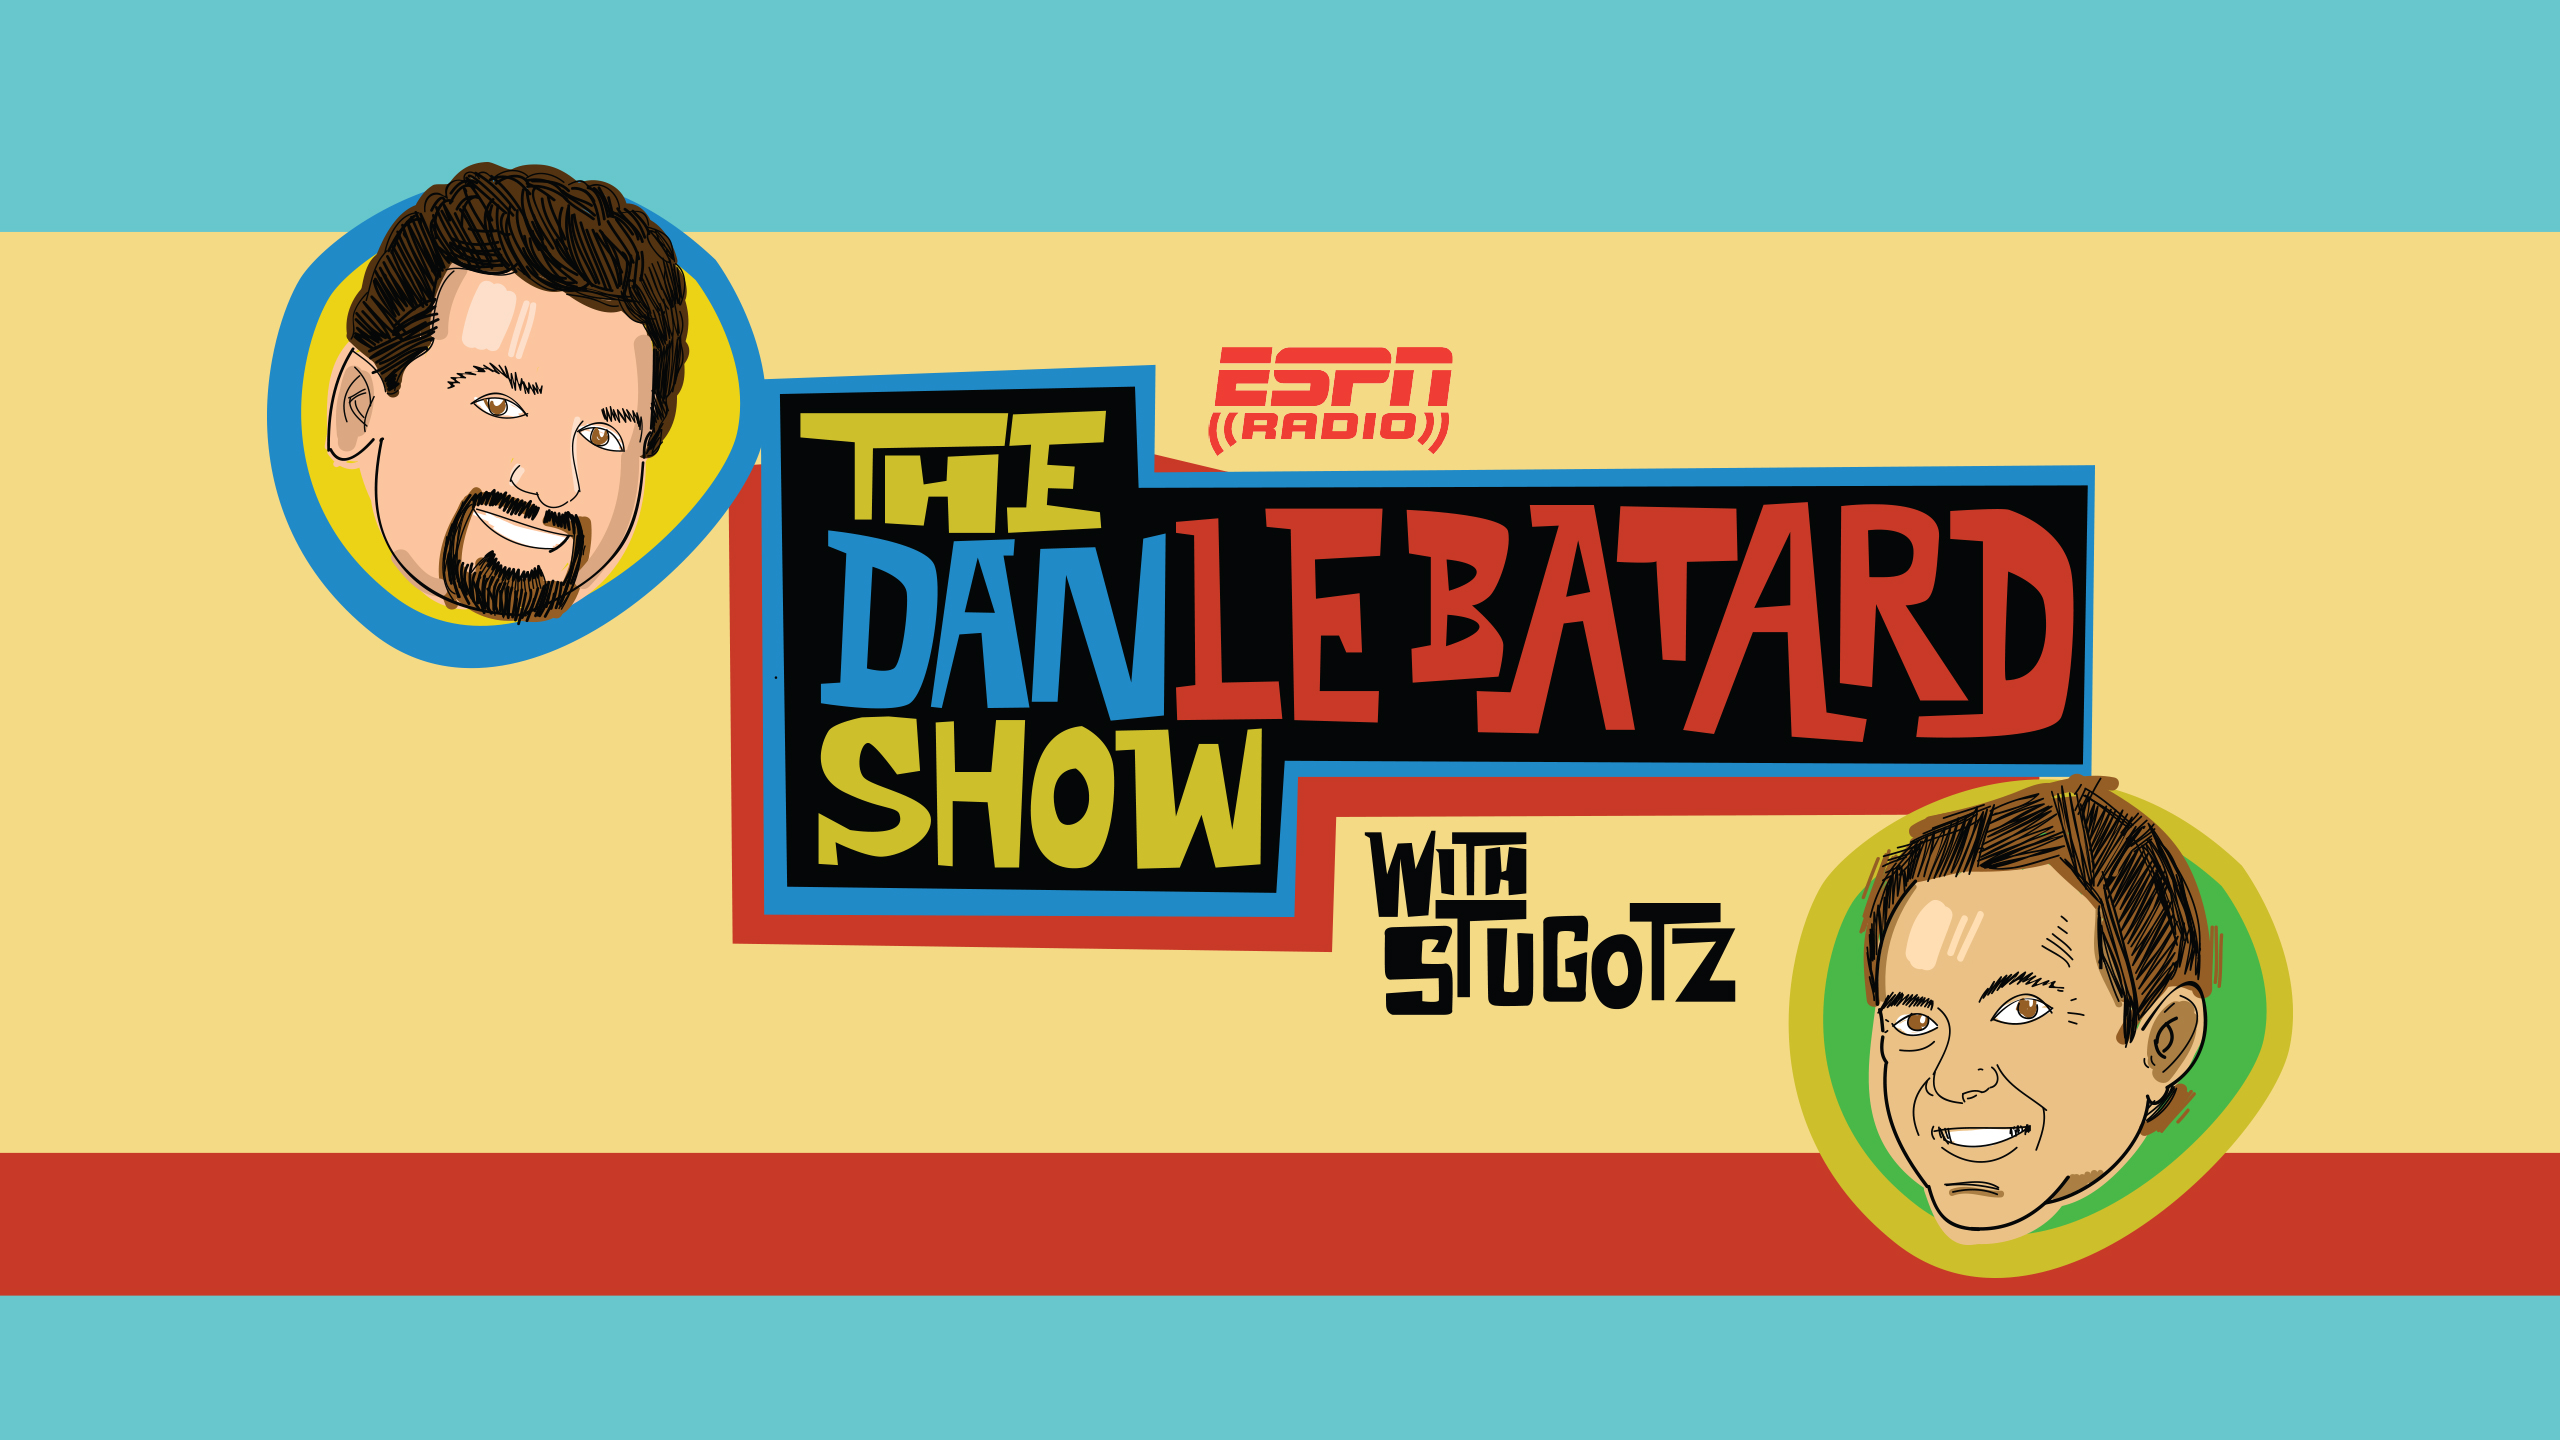 Thu, 11/15 - The Dan Le Batard Show with Stugotz Presented by Progressive